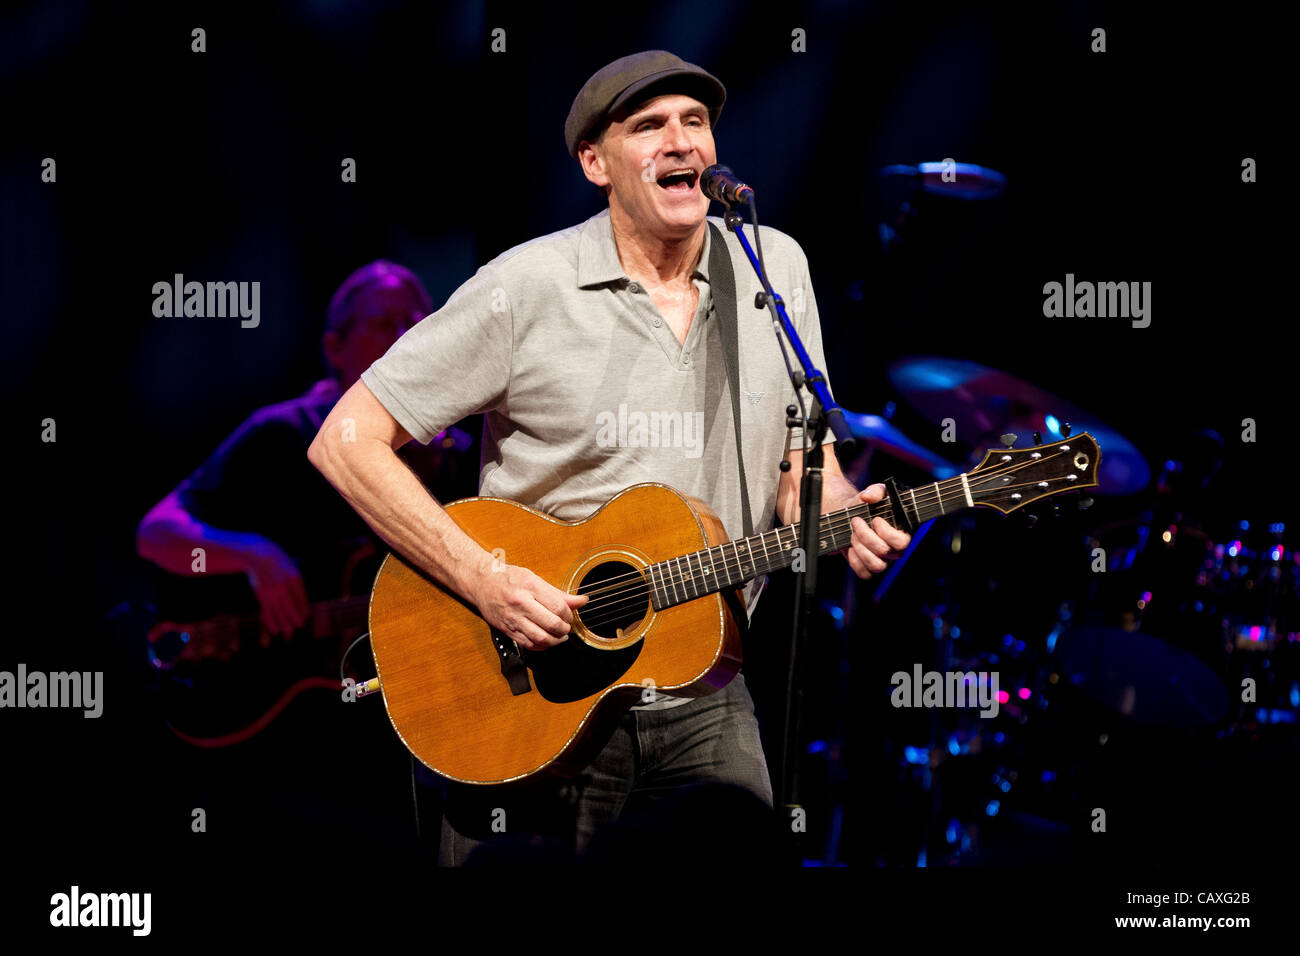 James Taylor pictured in concert at the Bozar Auditorium